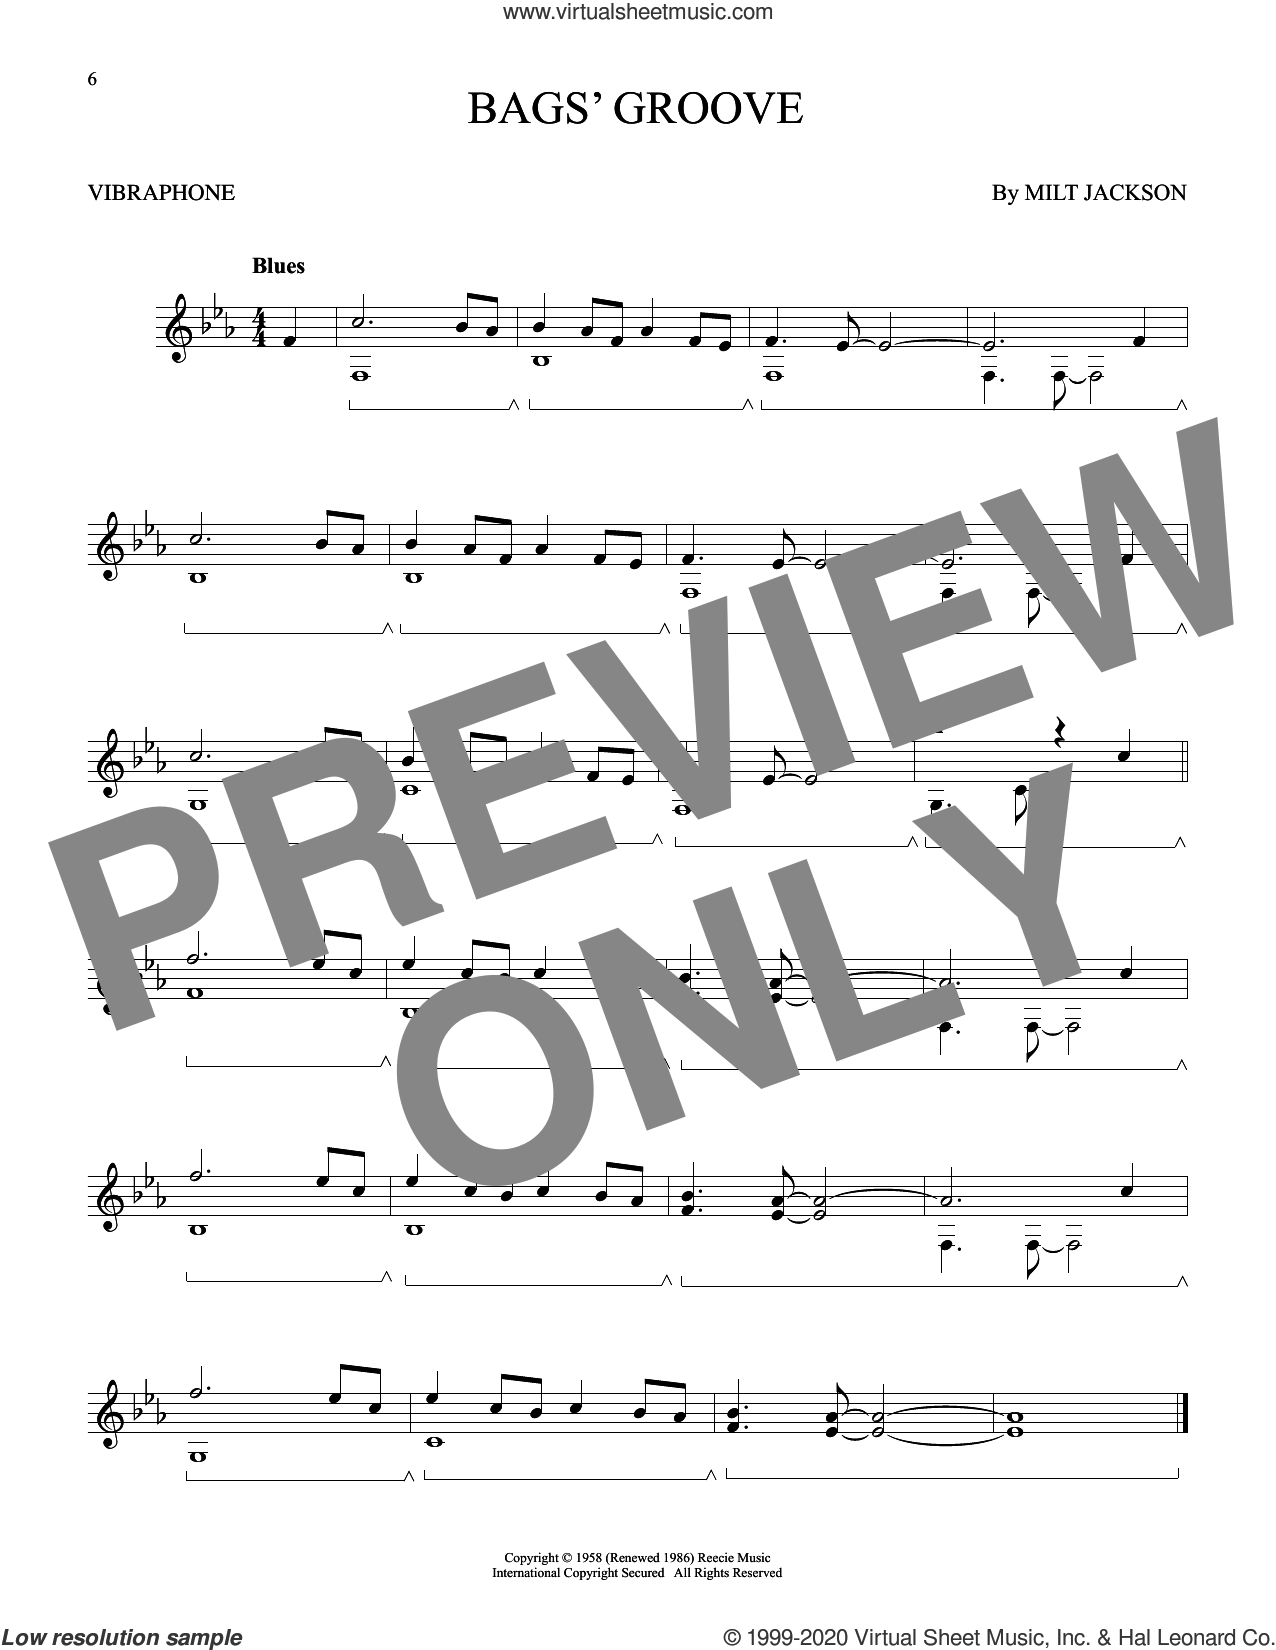 Bags' Groove sheet music for Vibraphone Solo by Milt Jackson, intermediate skill level